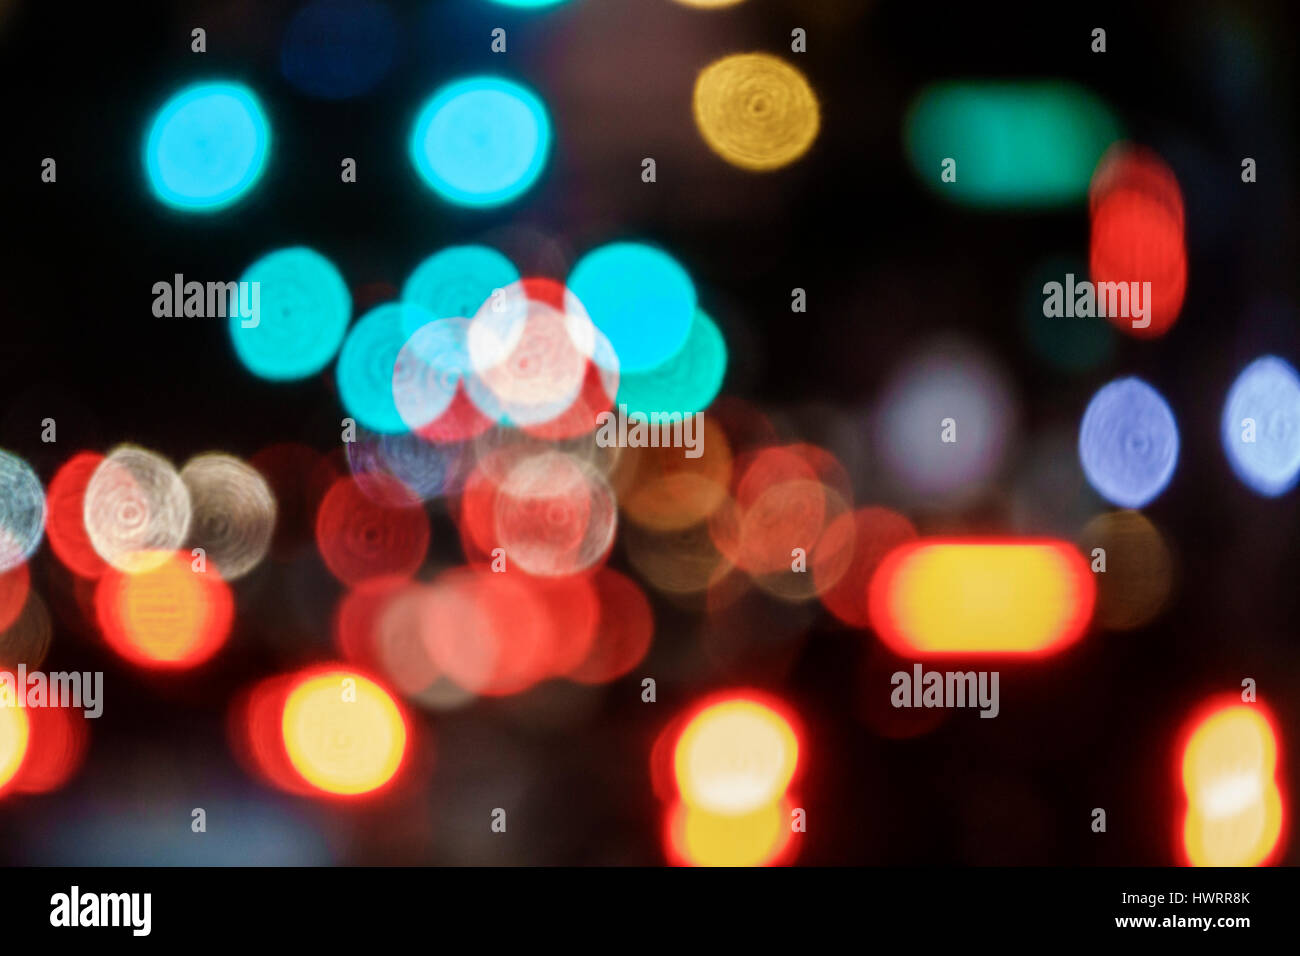 Miami Florida out-of-focus lights blur focus bokeh traffic lights visual effect red tail lights - Stock Image